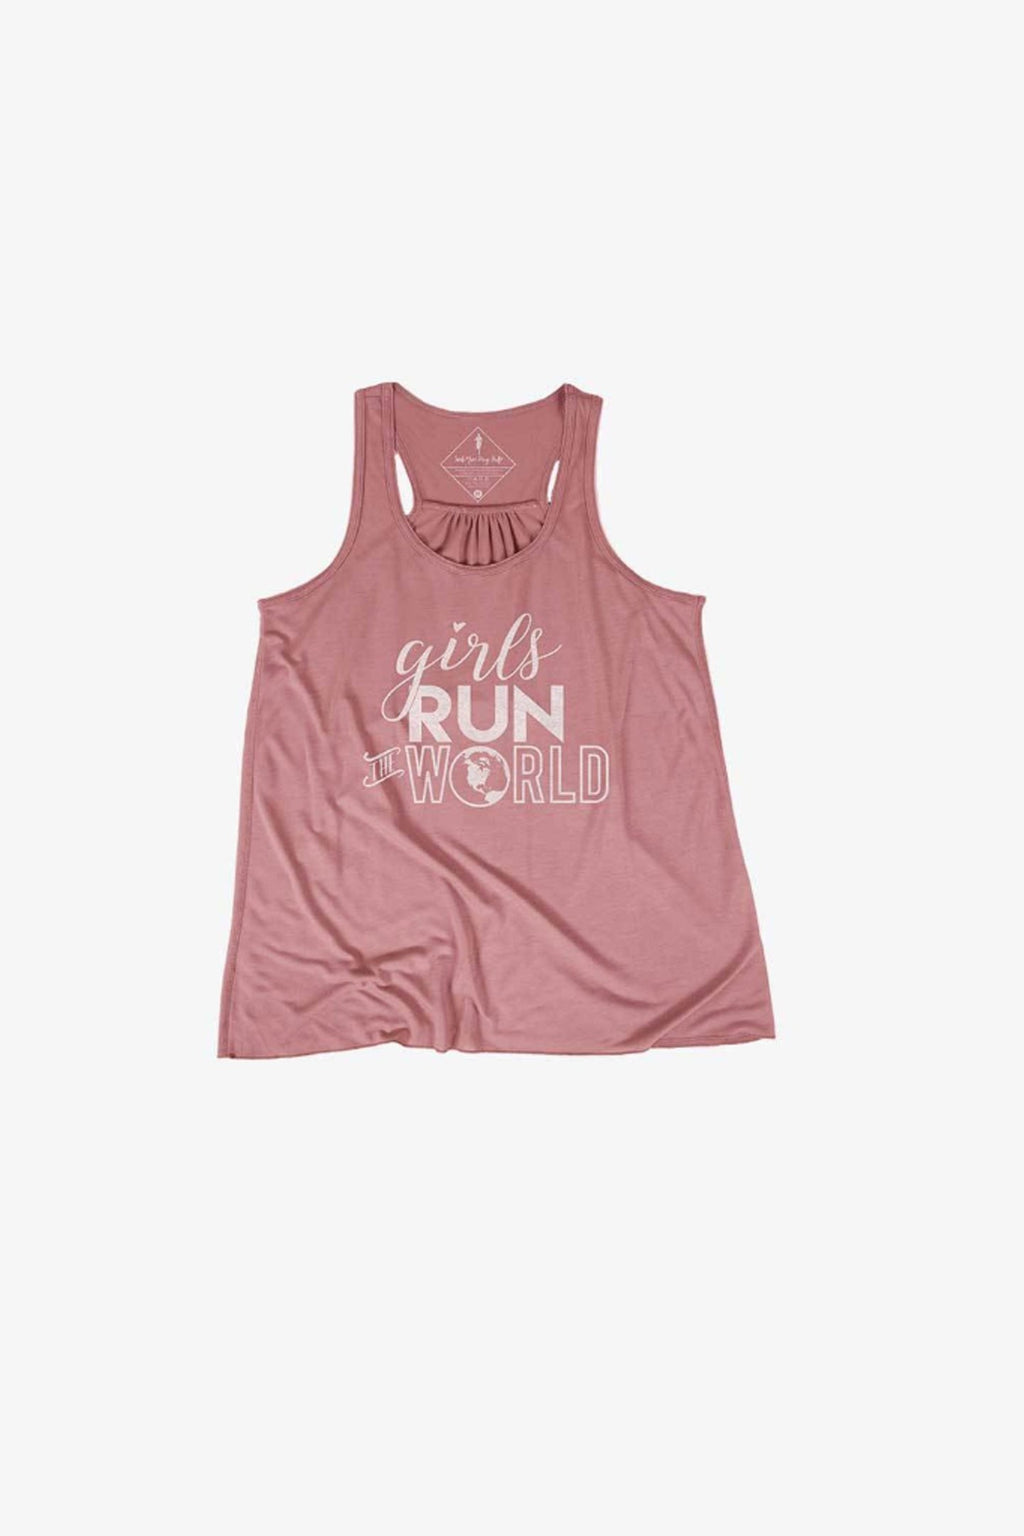 Girls Run The World Youth Tank - Sarah Marie Design Studio